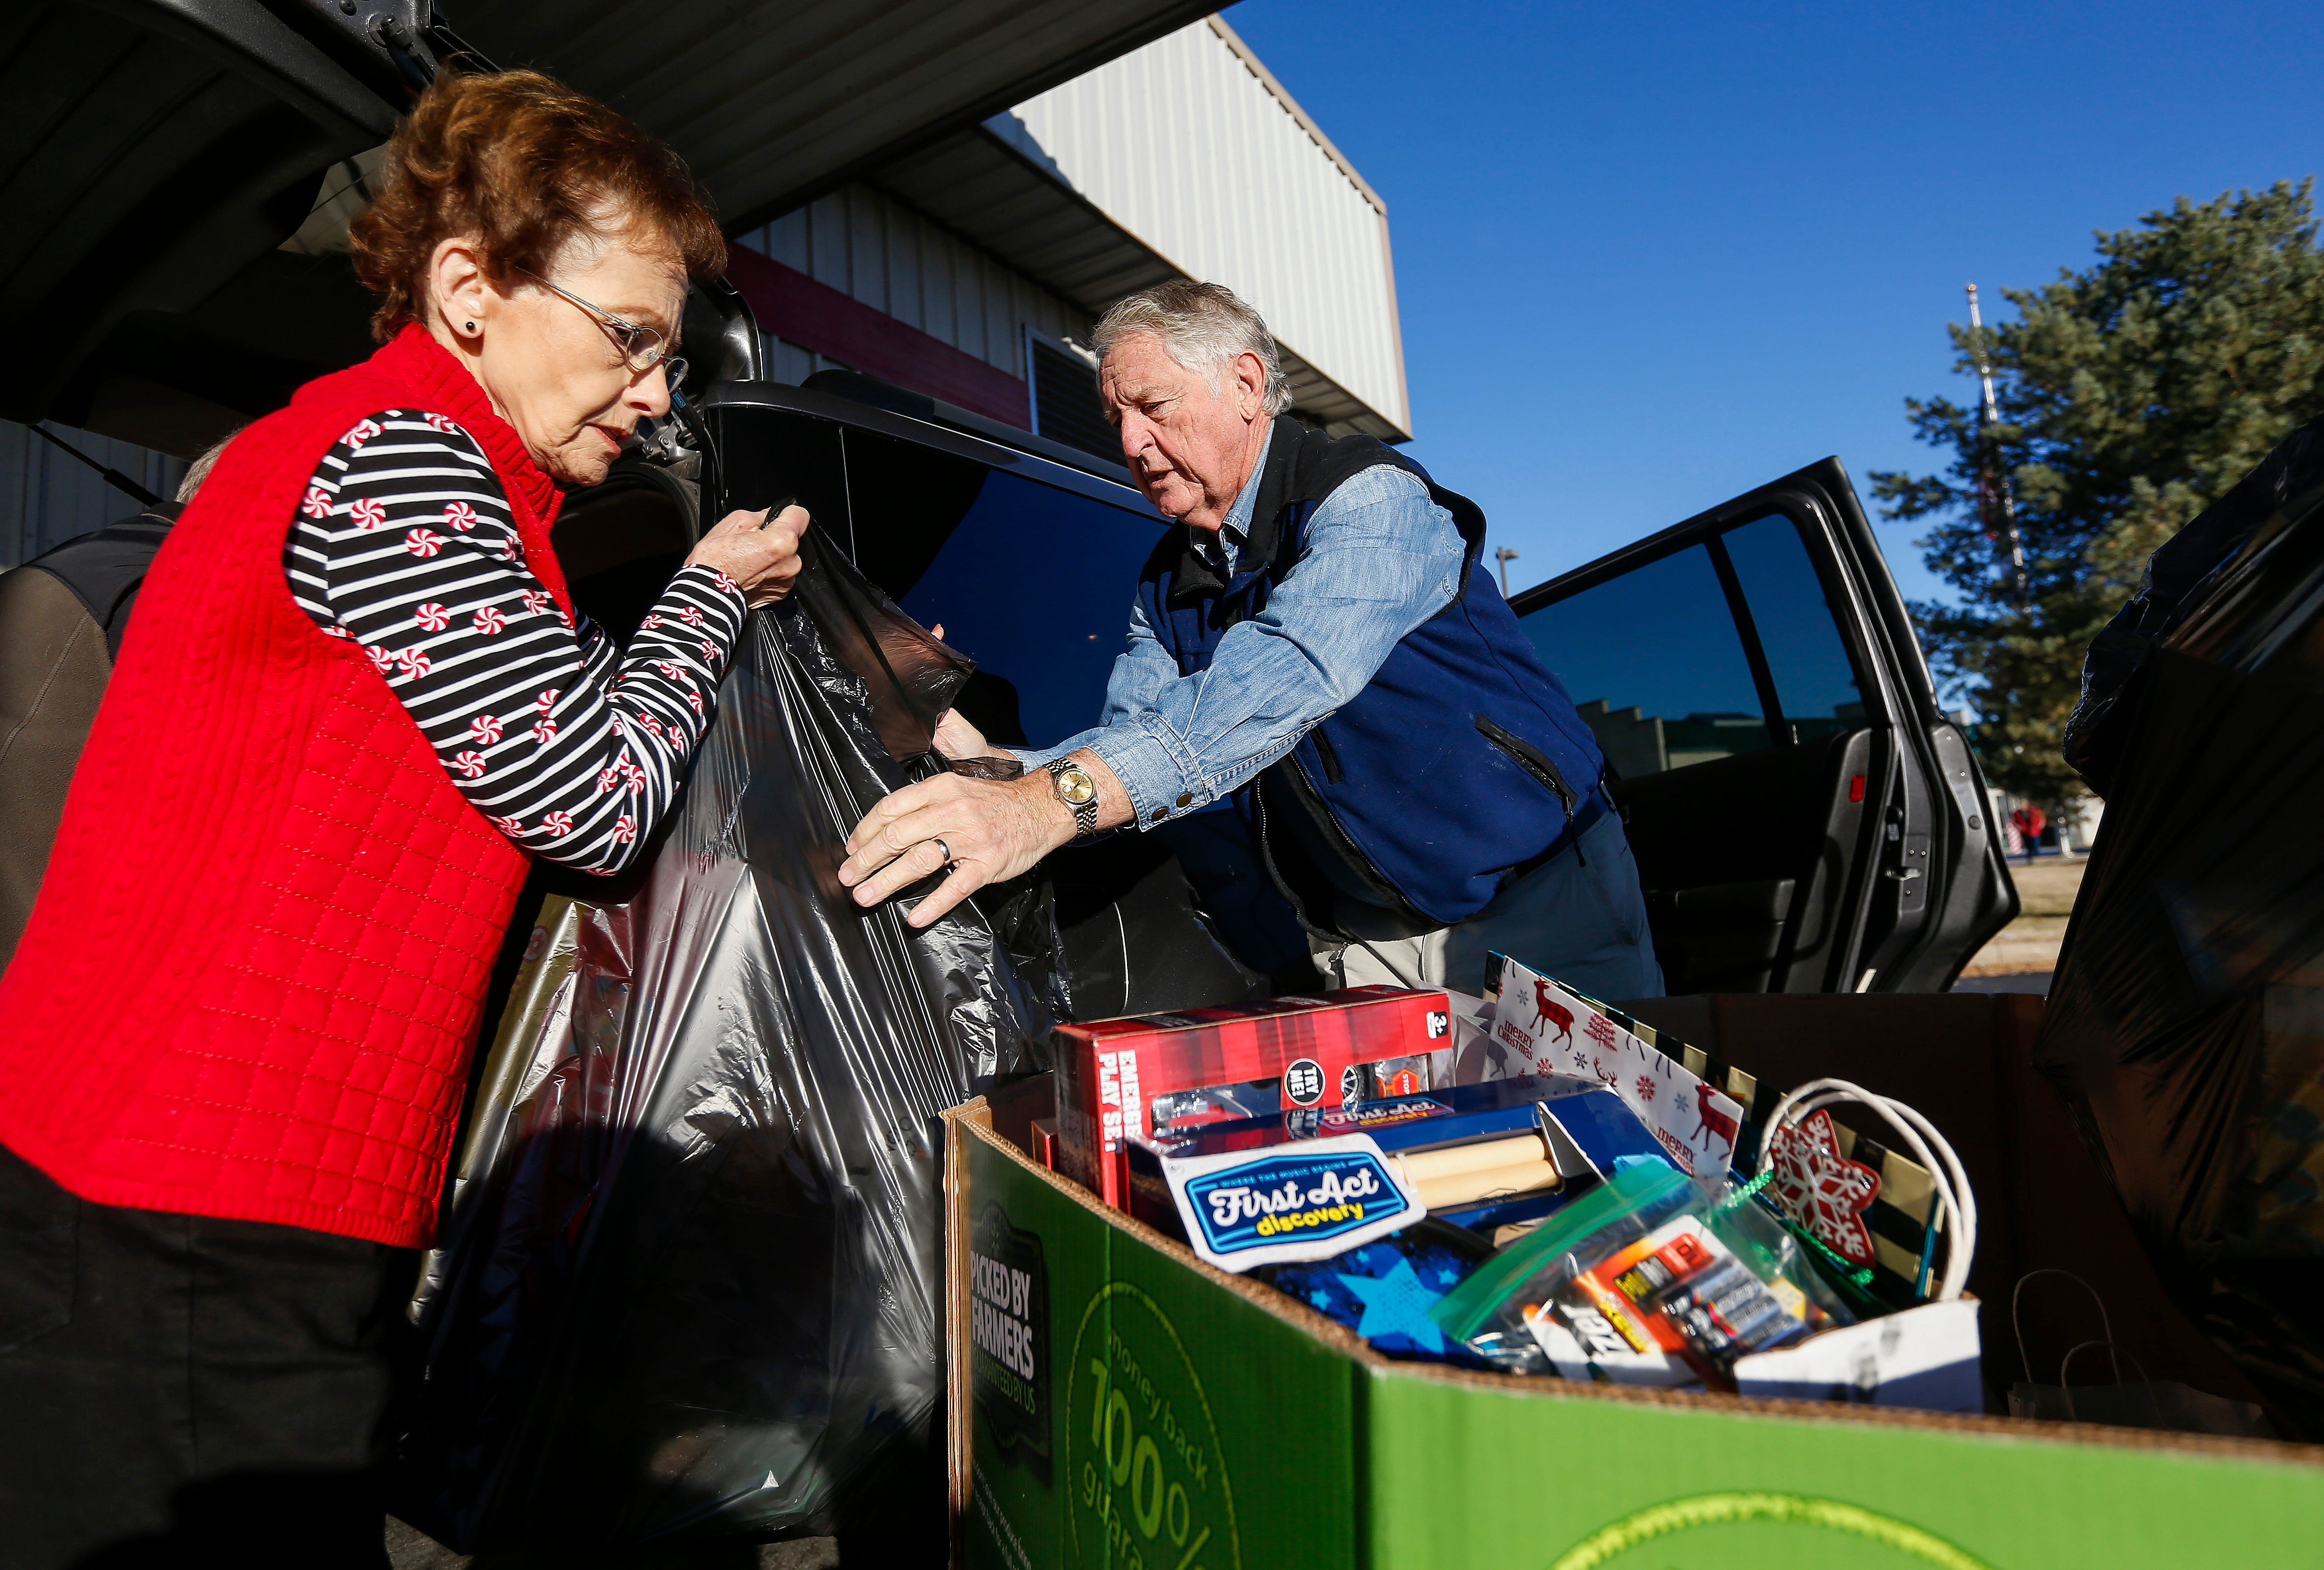 Volunteer Lanny Brent, right, and Sheryl Wachter load gifts into a client's vehicle during the Share Your Christmas distribution at Crosslines on Tuesday, Dec. 18, 2018.